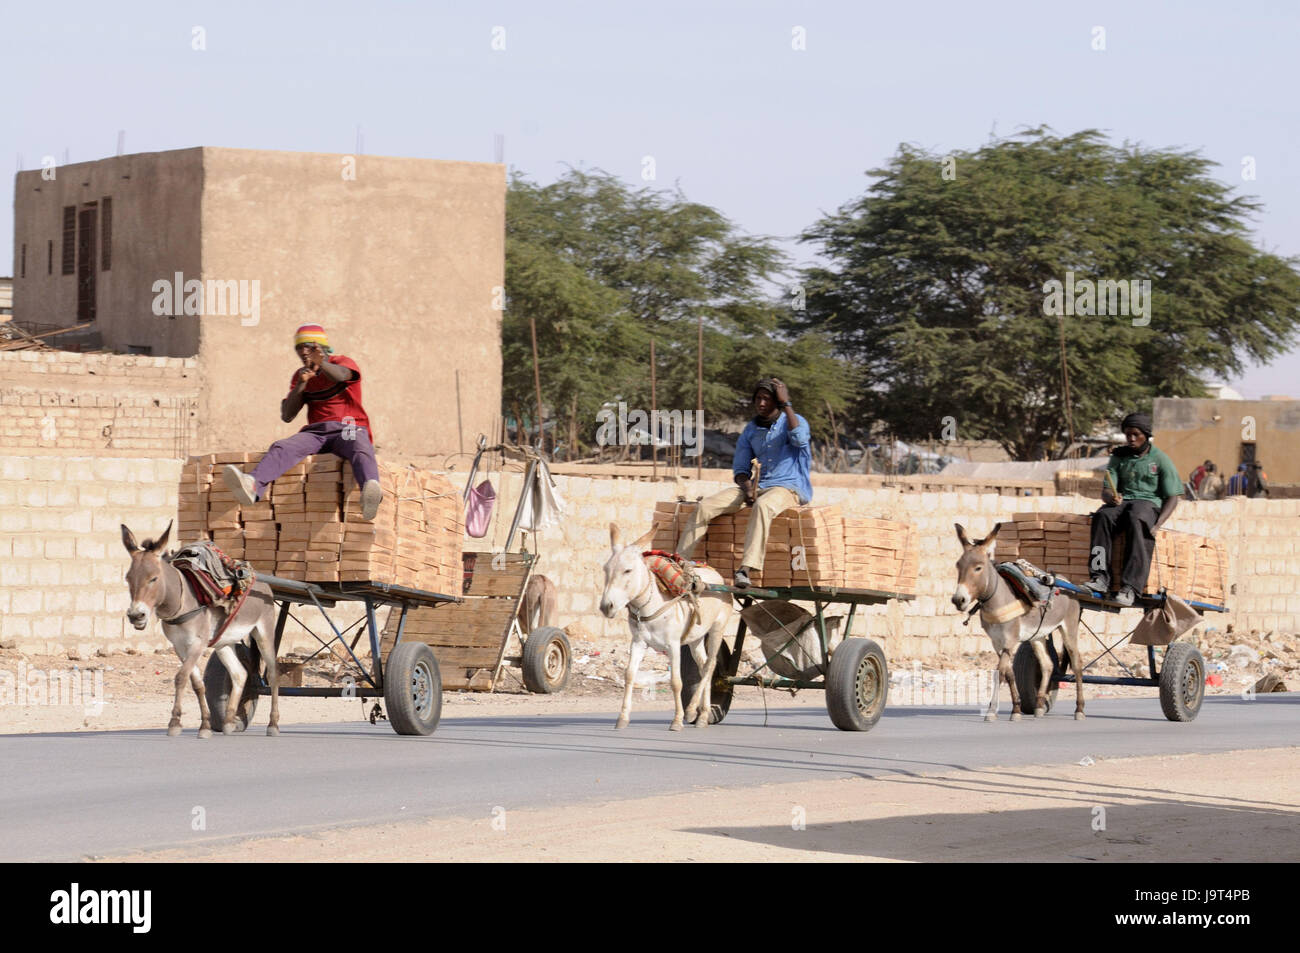 Mauritania,Nouakchott,men,donkey carts,costs transport,no model release,Africa,West Africa,town,capital,economy,building,houses,architecture,person,locals,turban,transport,carts,donkeys,animals,benefit - Stock Image